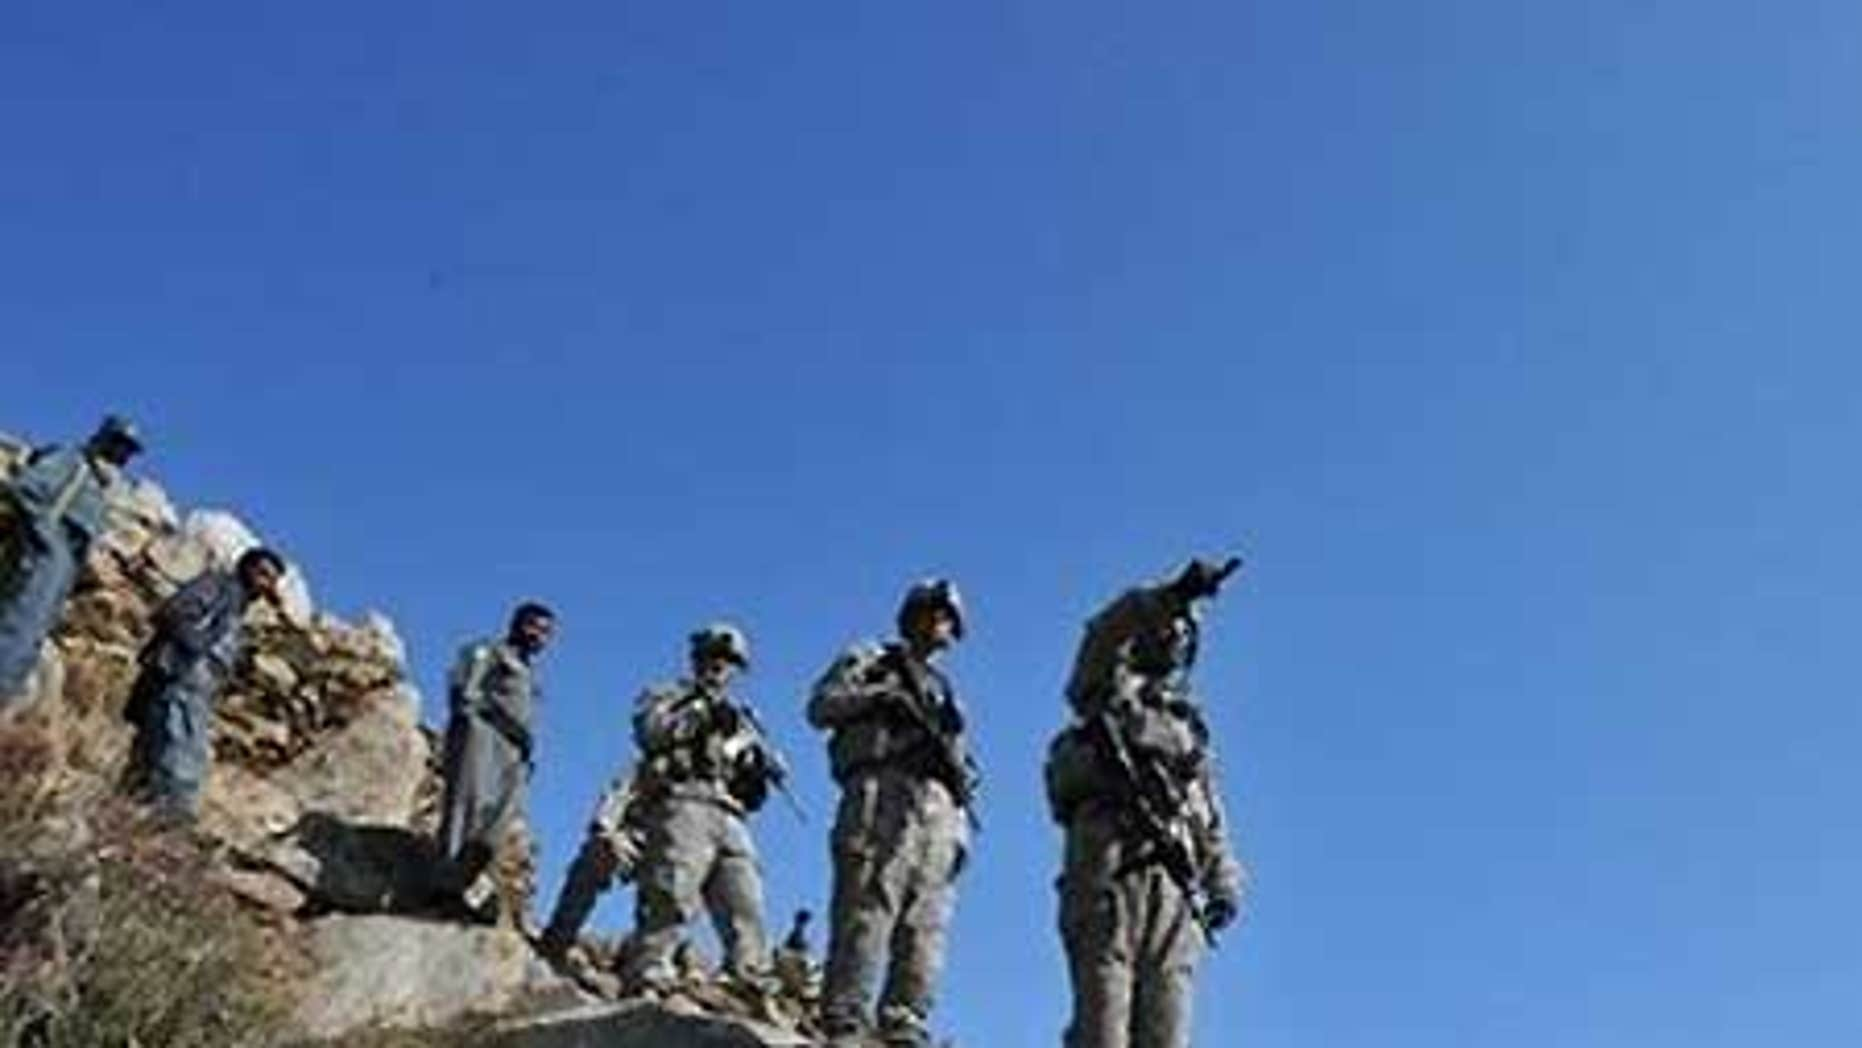 Feb. 17: U.S. troops patrol at Tag in Laghman. Pakistan has confirmed the capture of the Taliban's top military commander Mullah Abdul Ghani Baradar.